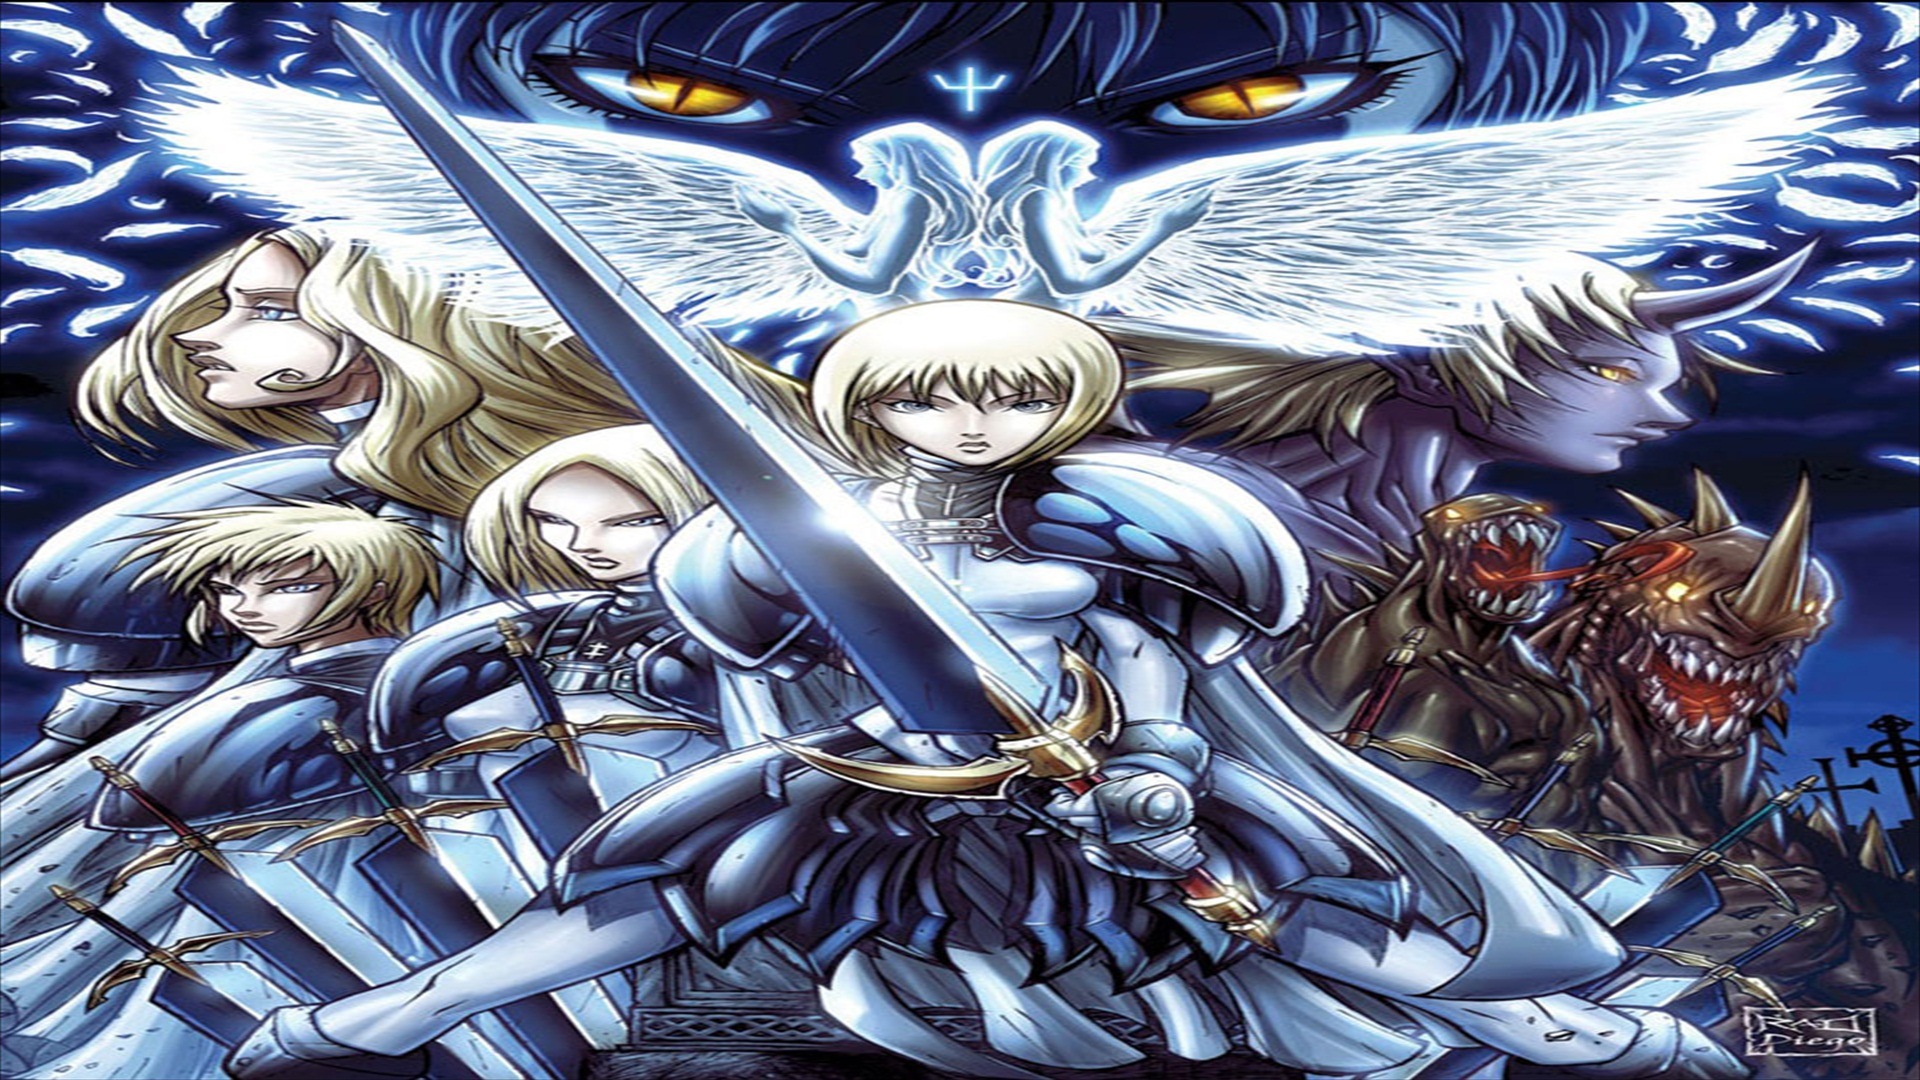 Anime Claymore Wallpaper 1920x1080 Anime Claymore 1920x1080